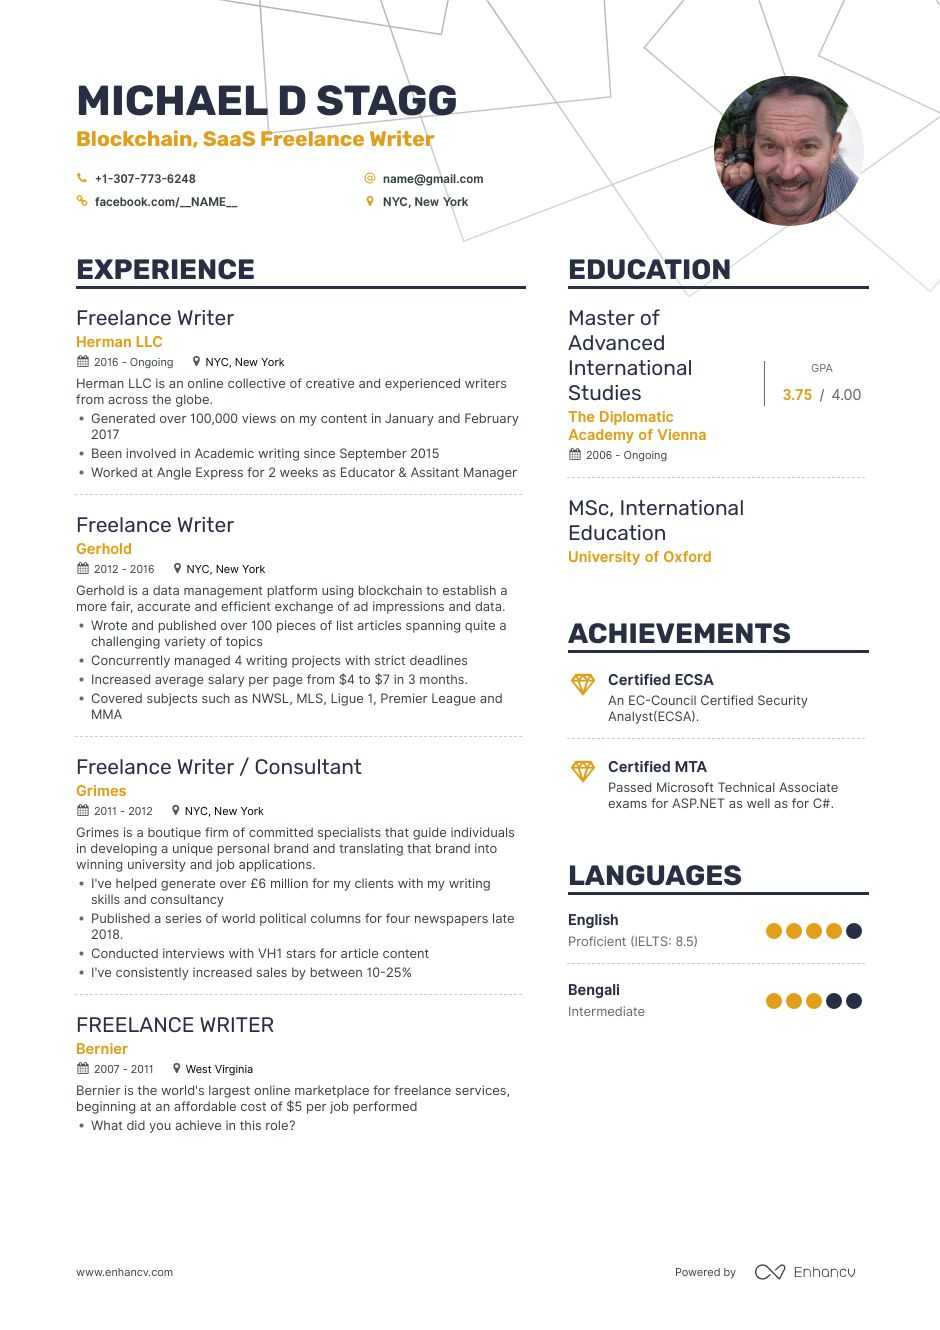 freelance writer resume examples and skills you need to get hired entry level busser home Resume Entry Level Writer Resume